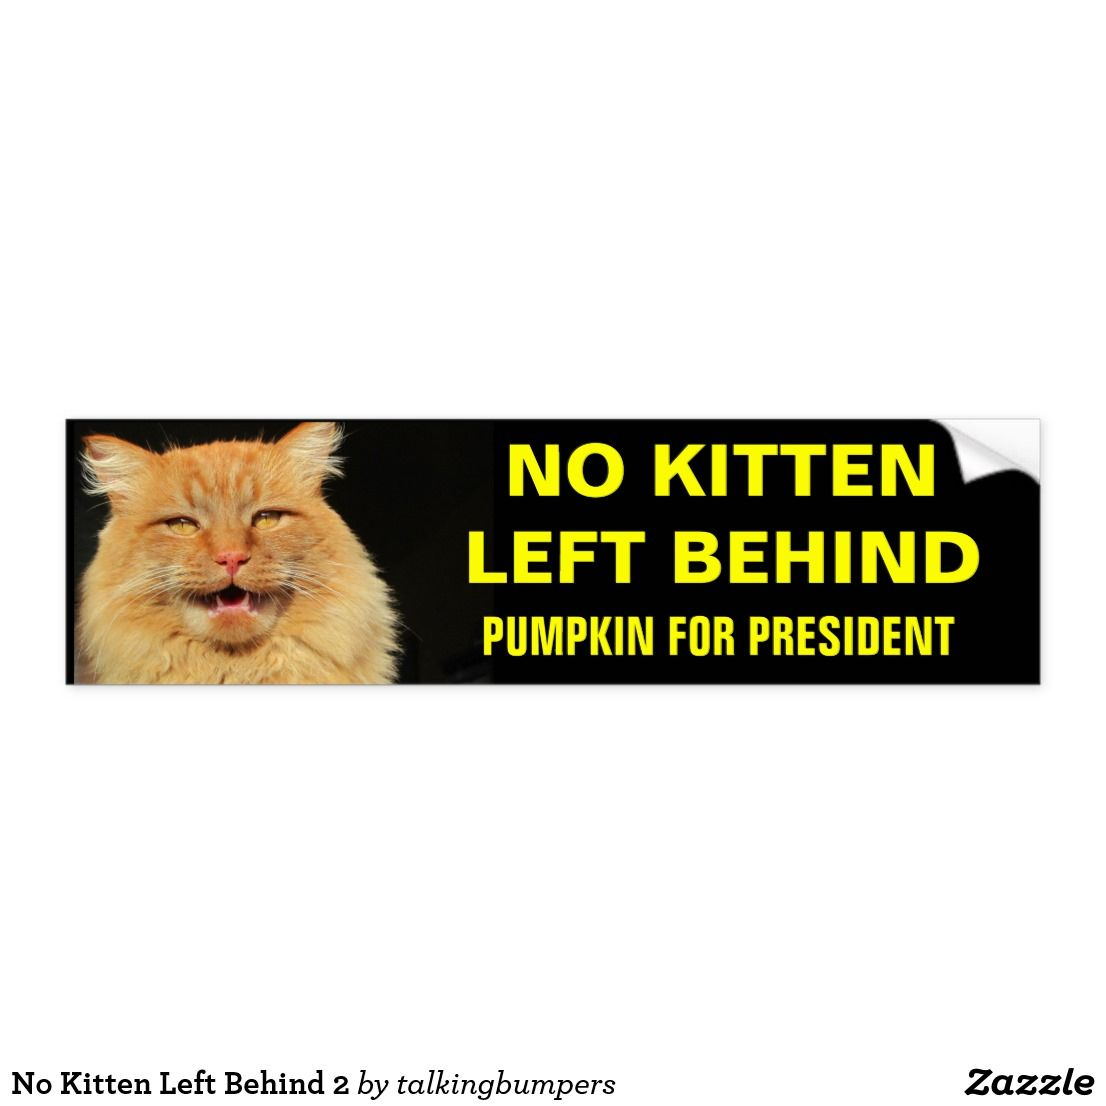 No Kitten Left Behind 2 Bumper Sticker Following George H W Bush And His Campaign Of No Child Left Bumper Stickers Cat Bumper Stickers Car Bumper Stickers